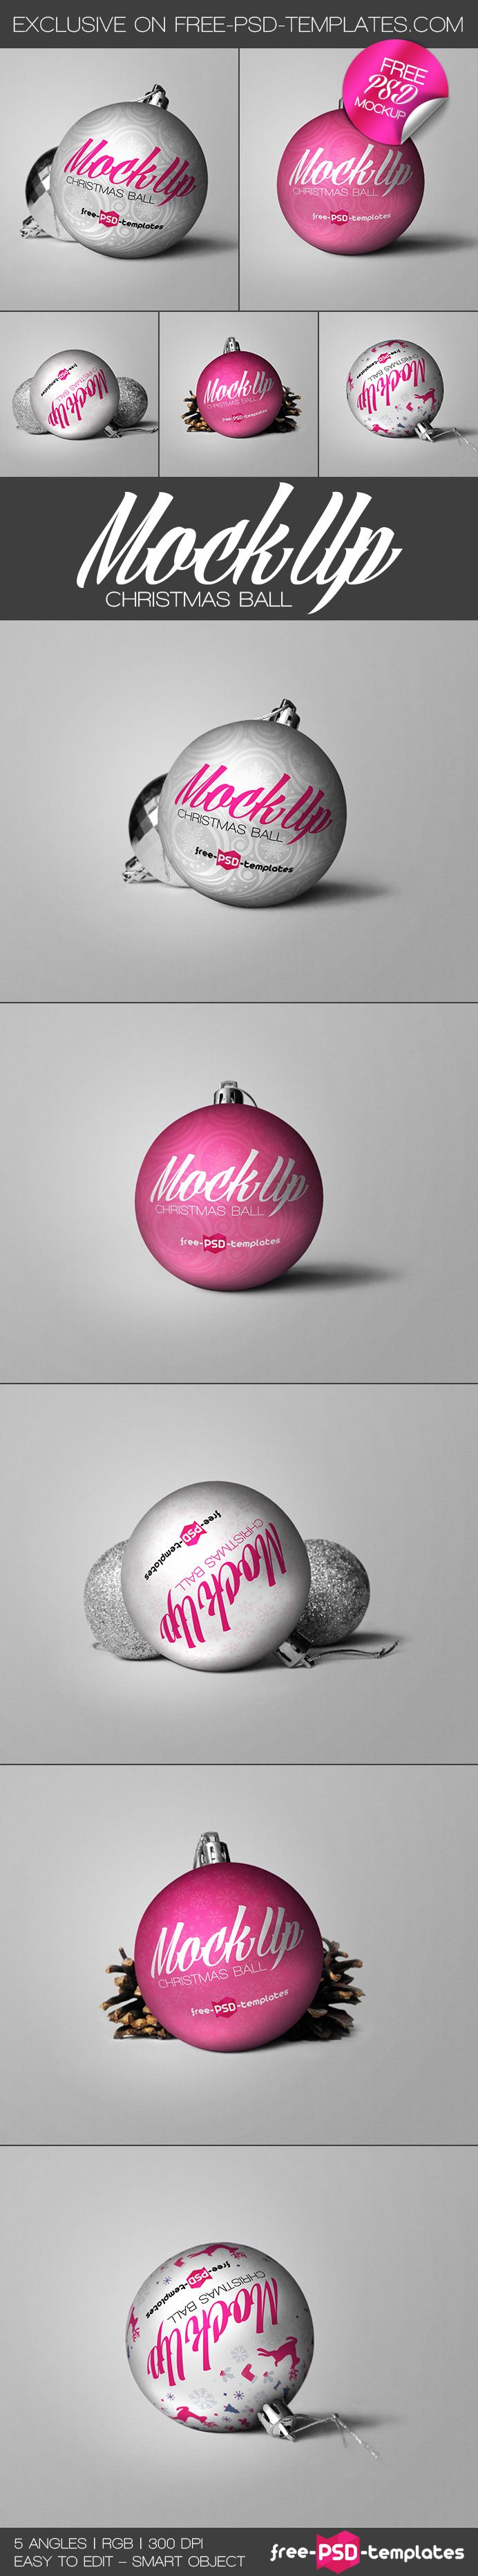 free christmas ball mockup 145 mb free psd templatescom free photoshop mockup